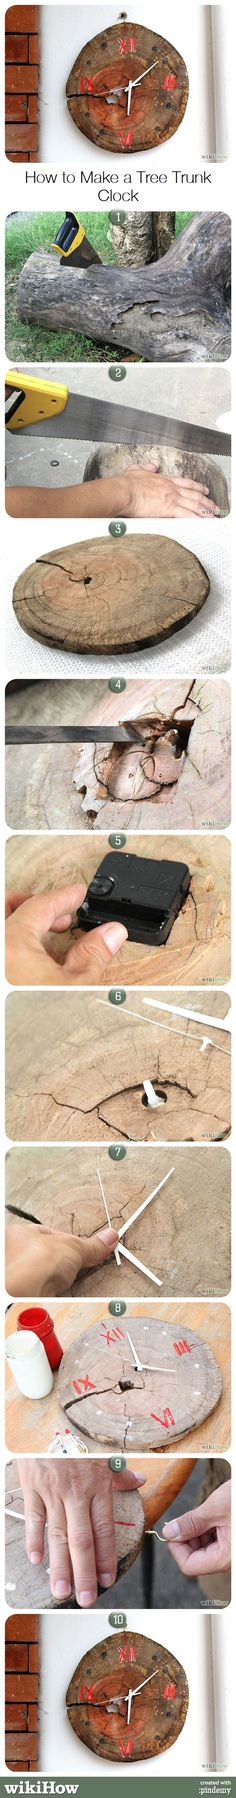 How to Make a Tree Trunk Clock Rustic Wall Clocks, Wood Clocks, Wood Projects, Woodworking Projects, Woodworking Plans, Wood Crafts, Diy And Crafts, Diy Wood, Trunk Furniture